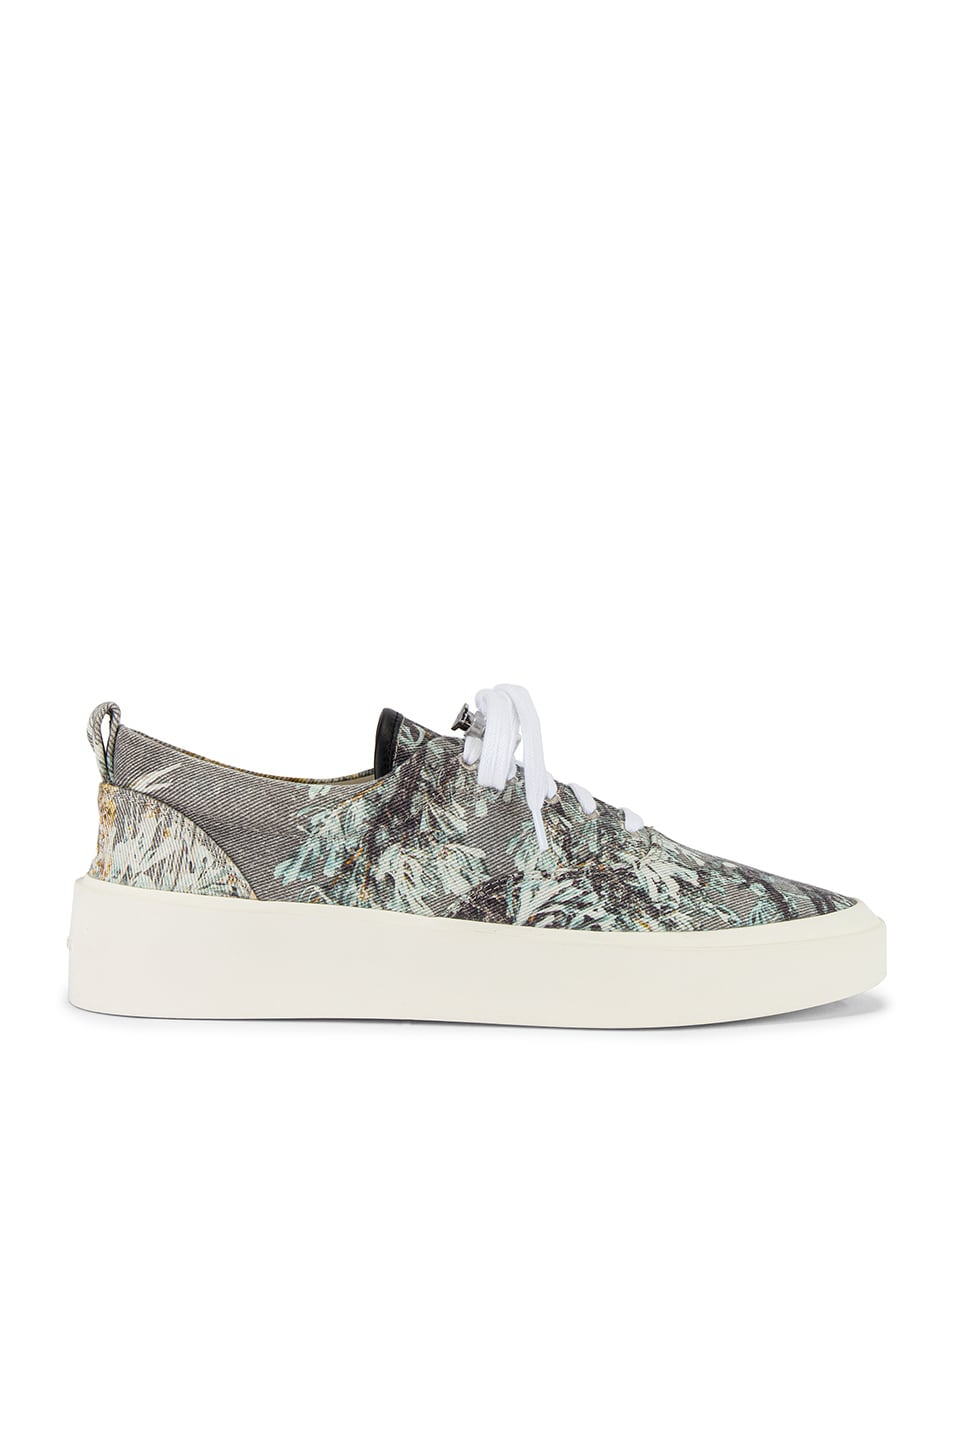 Image 2 of Fear of God 101 Lace Up Sneaker in Prairie Ghost Camo